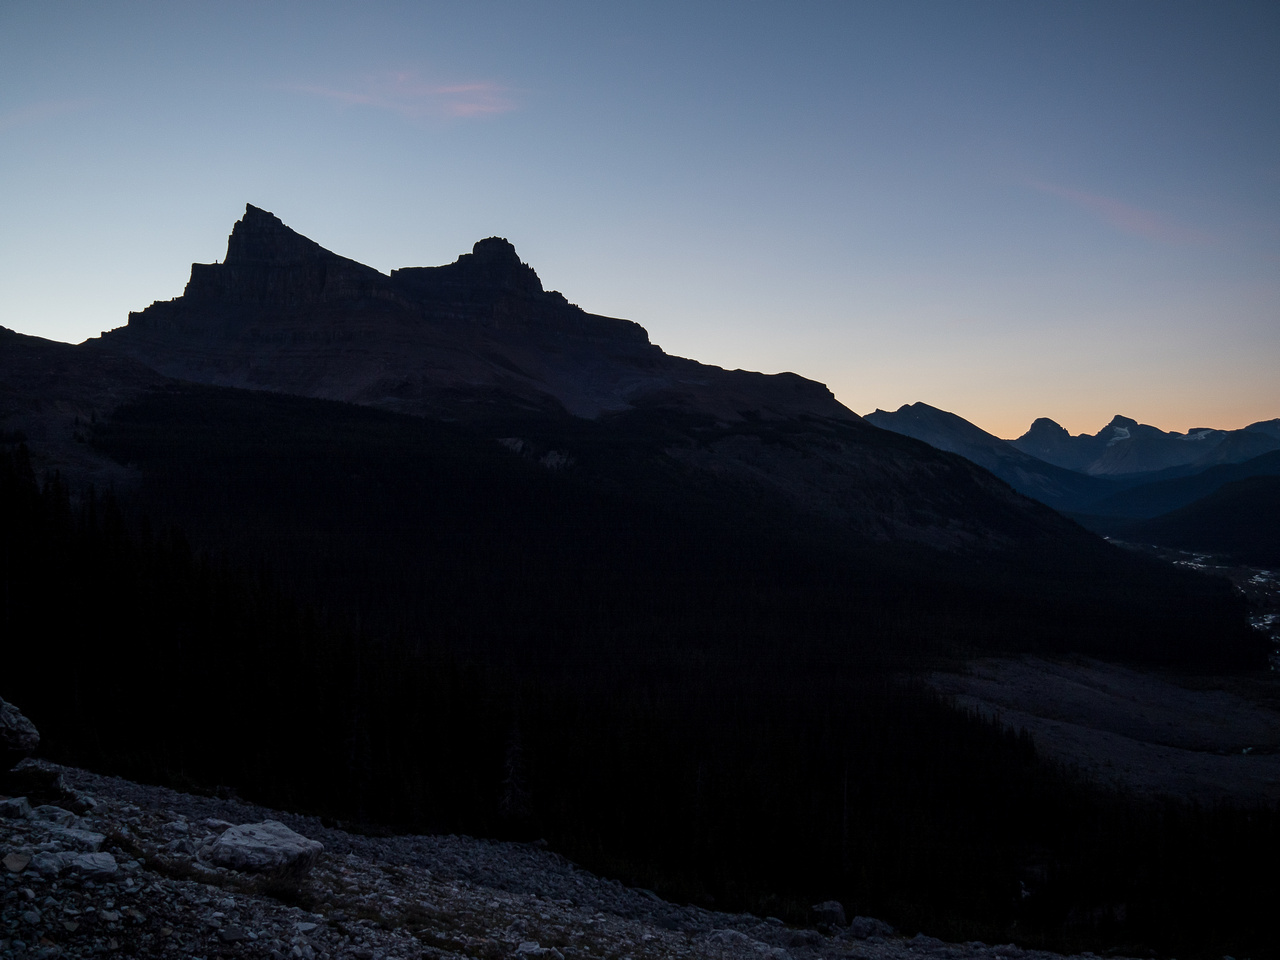 It's still very dark as we make our way down the Karst terrain east of Hector Pass.